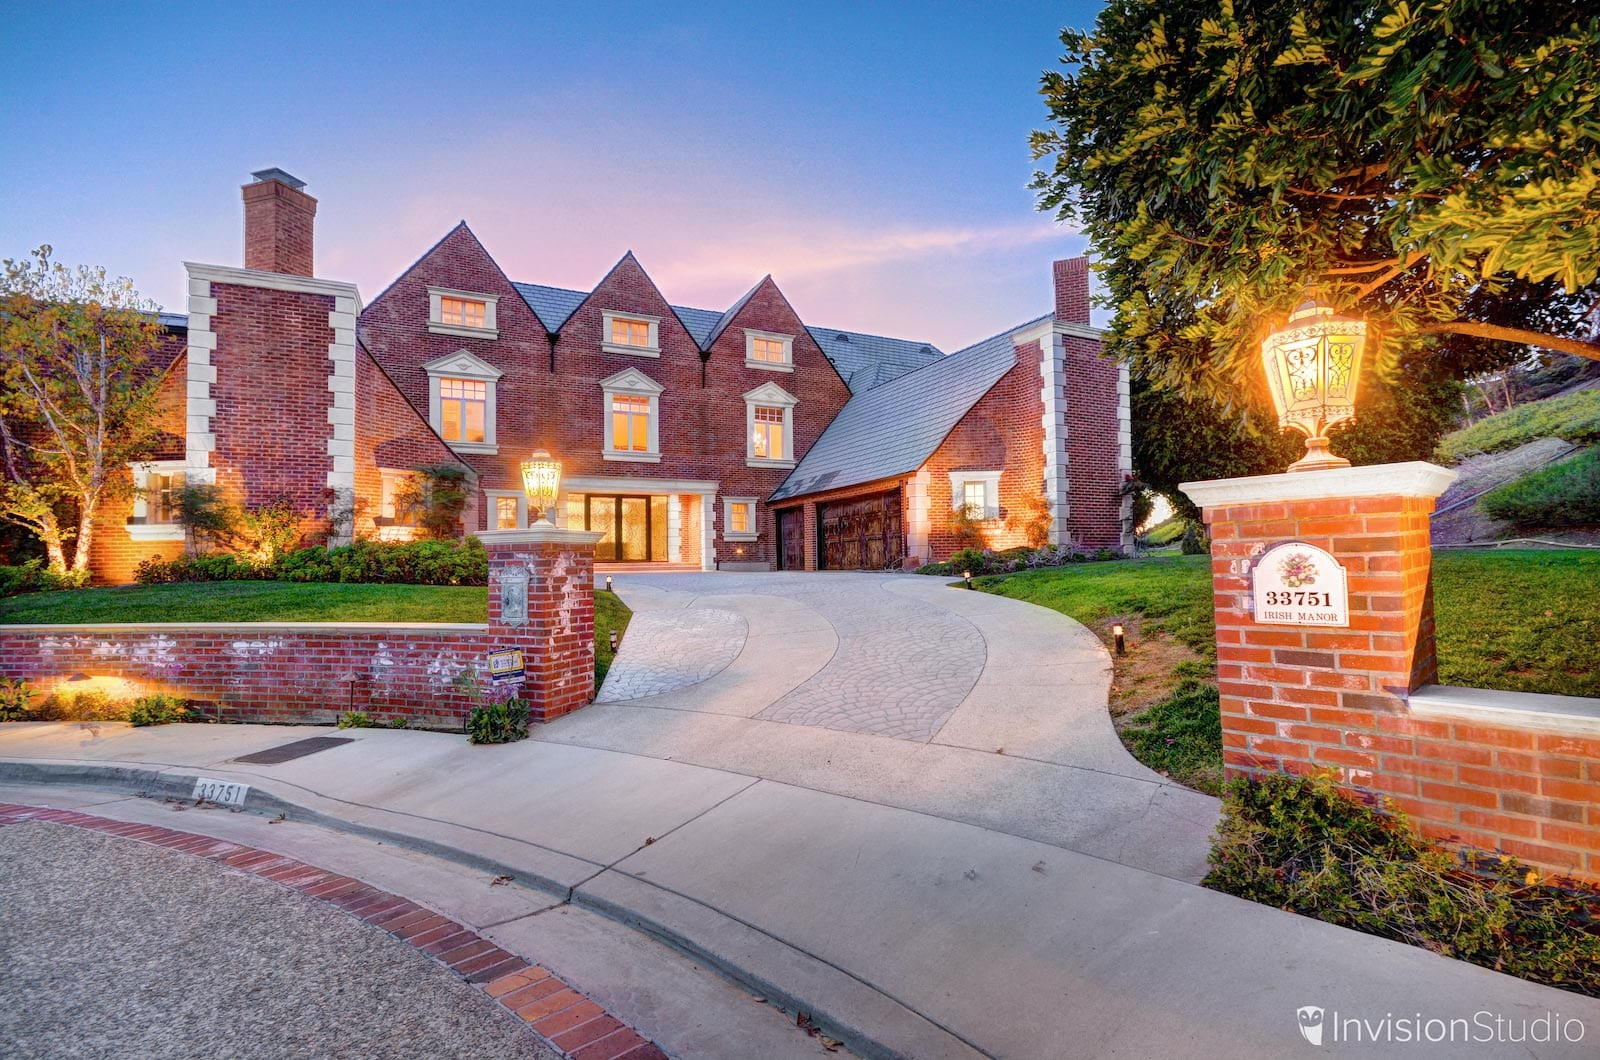 Tustin 3D Tour Service Provider | Tustin Aerial Photography Services | Tustin Luxury Real Estate Photography Services | Tustin Virtual Tour Photographer